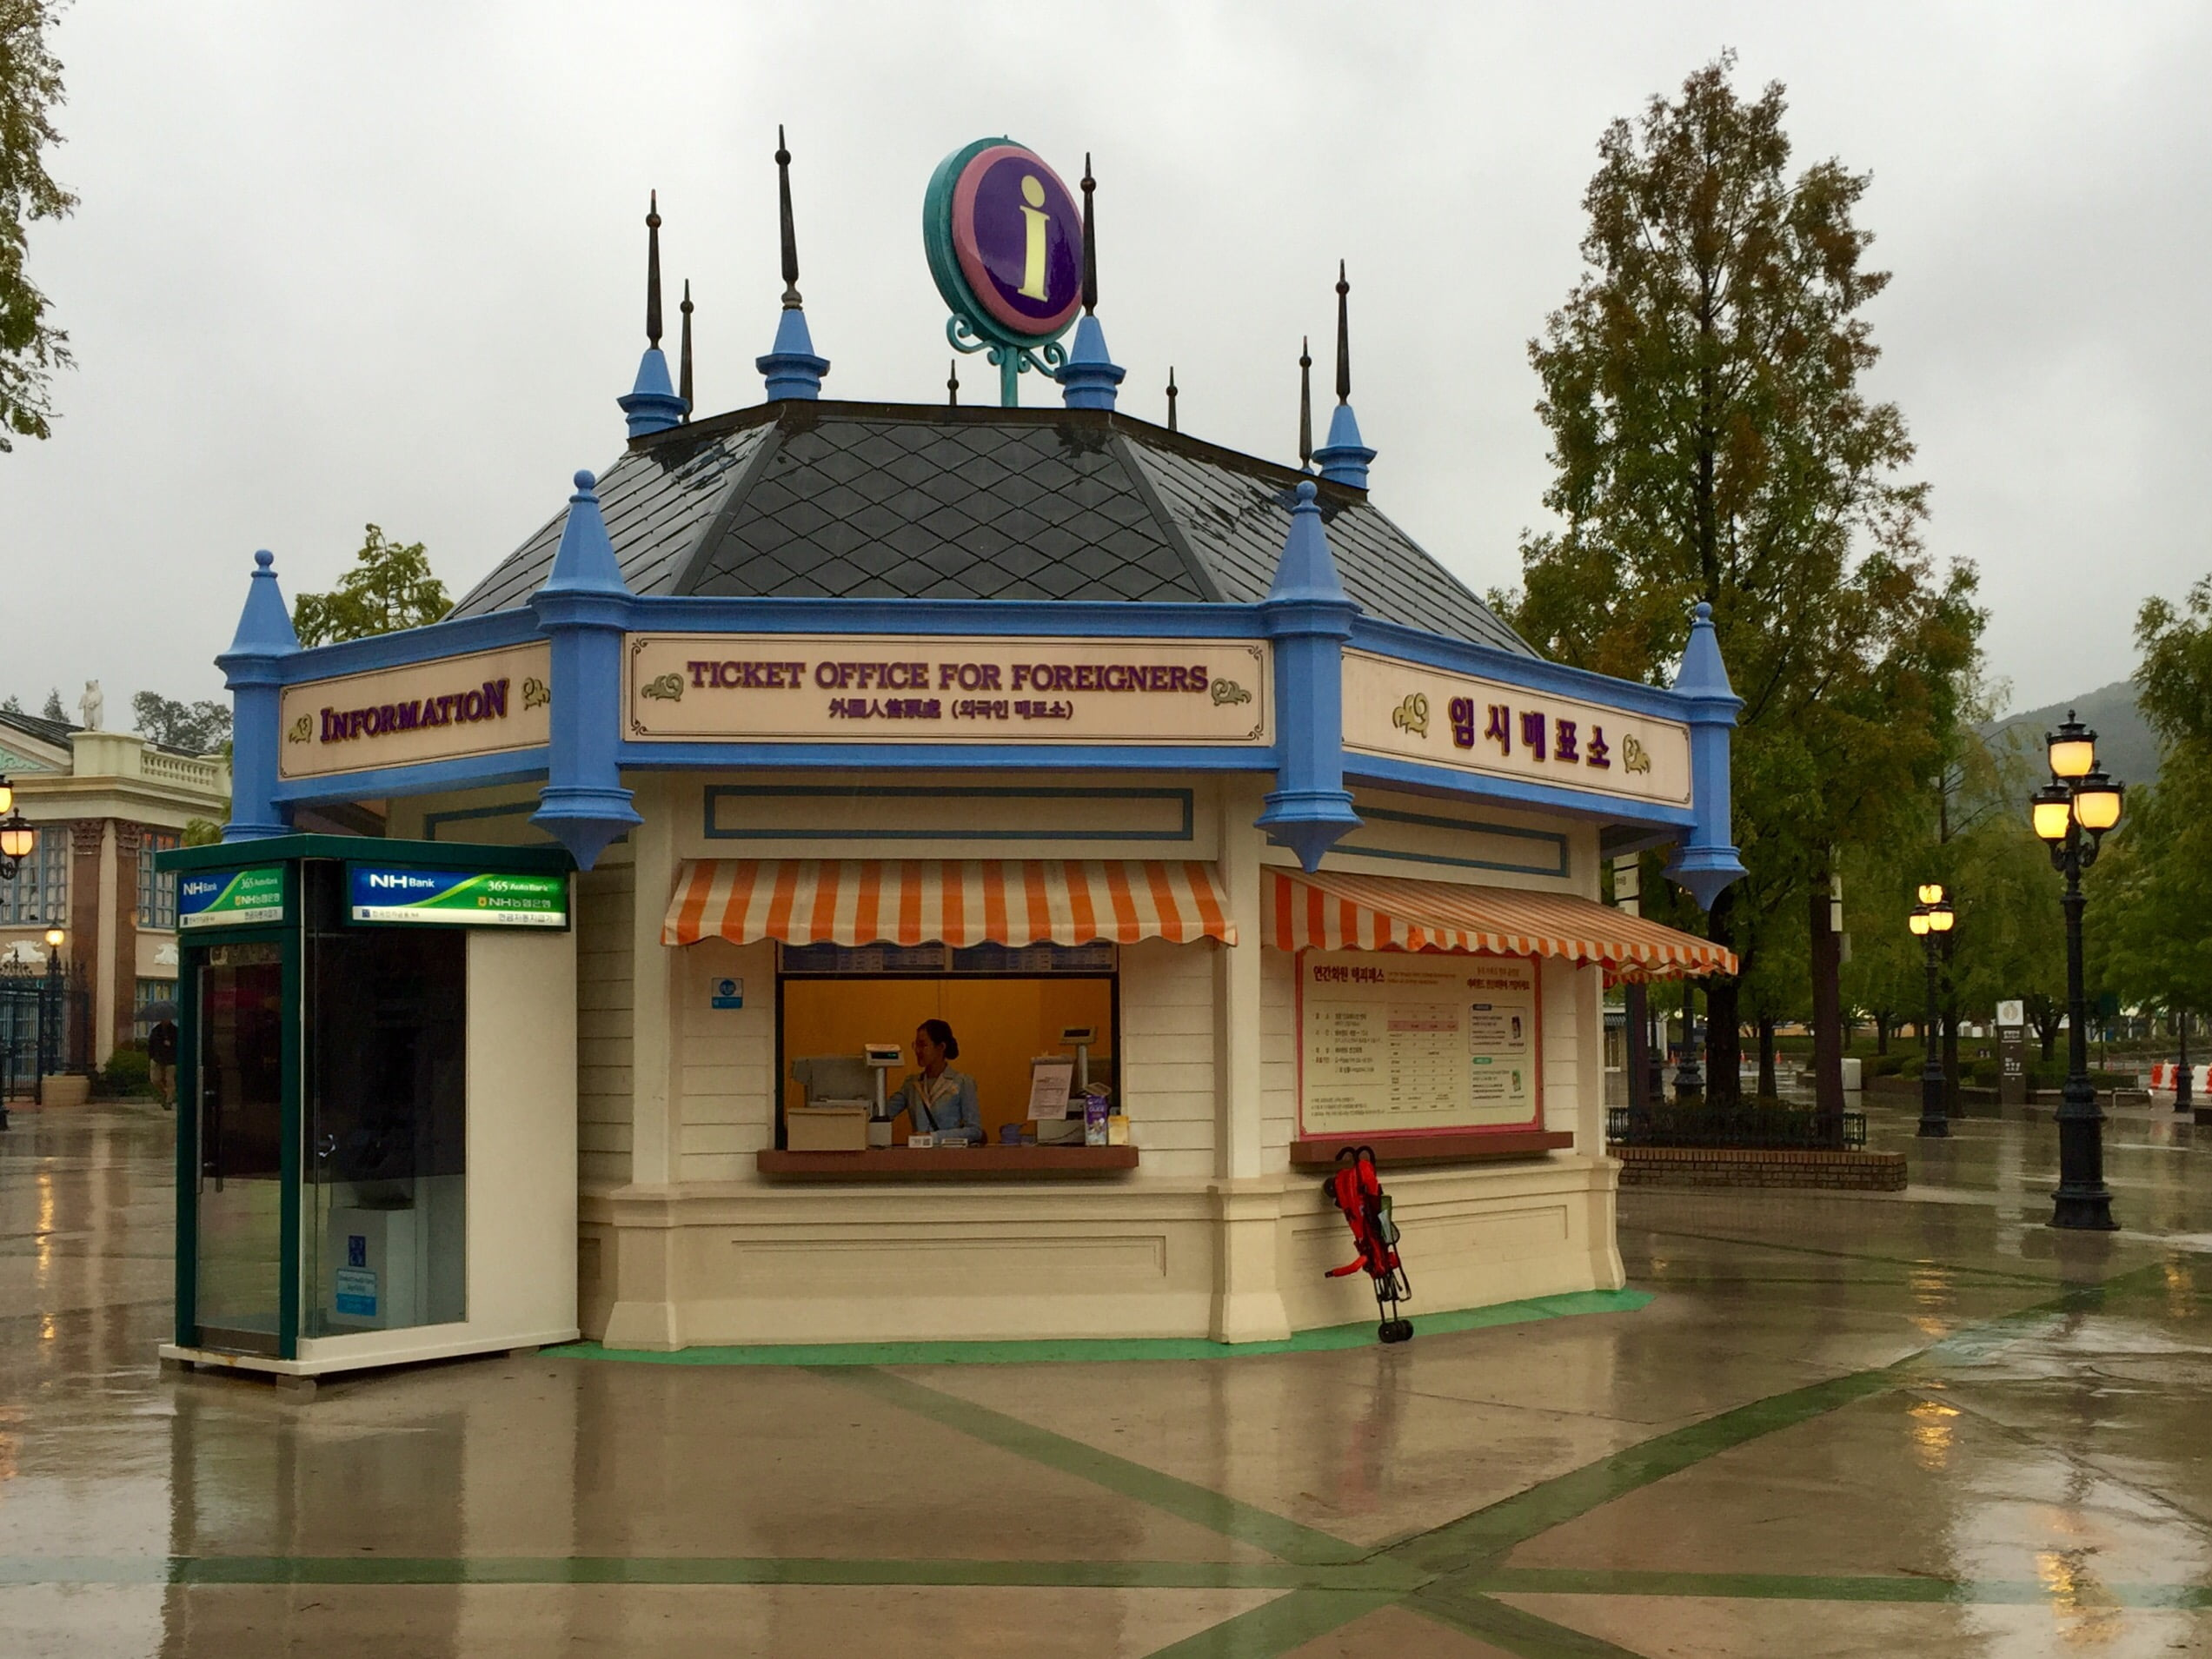 Everland Ticket Office for Foreigners